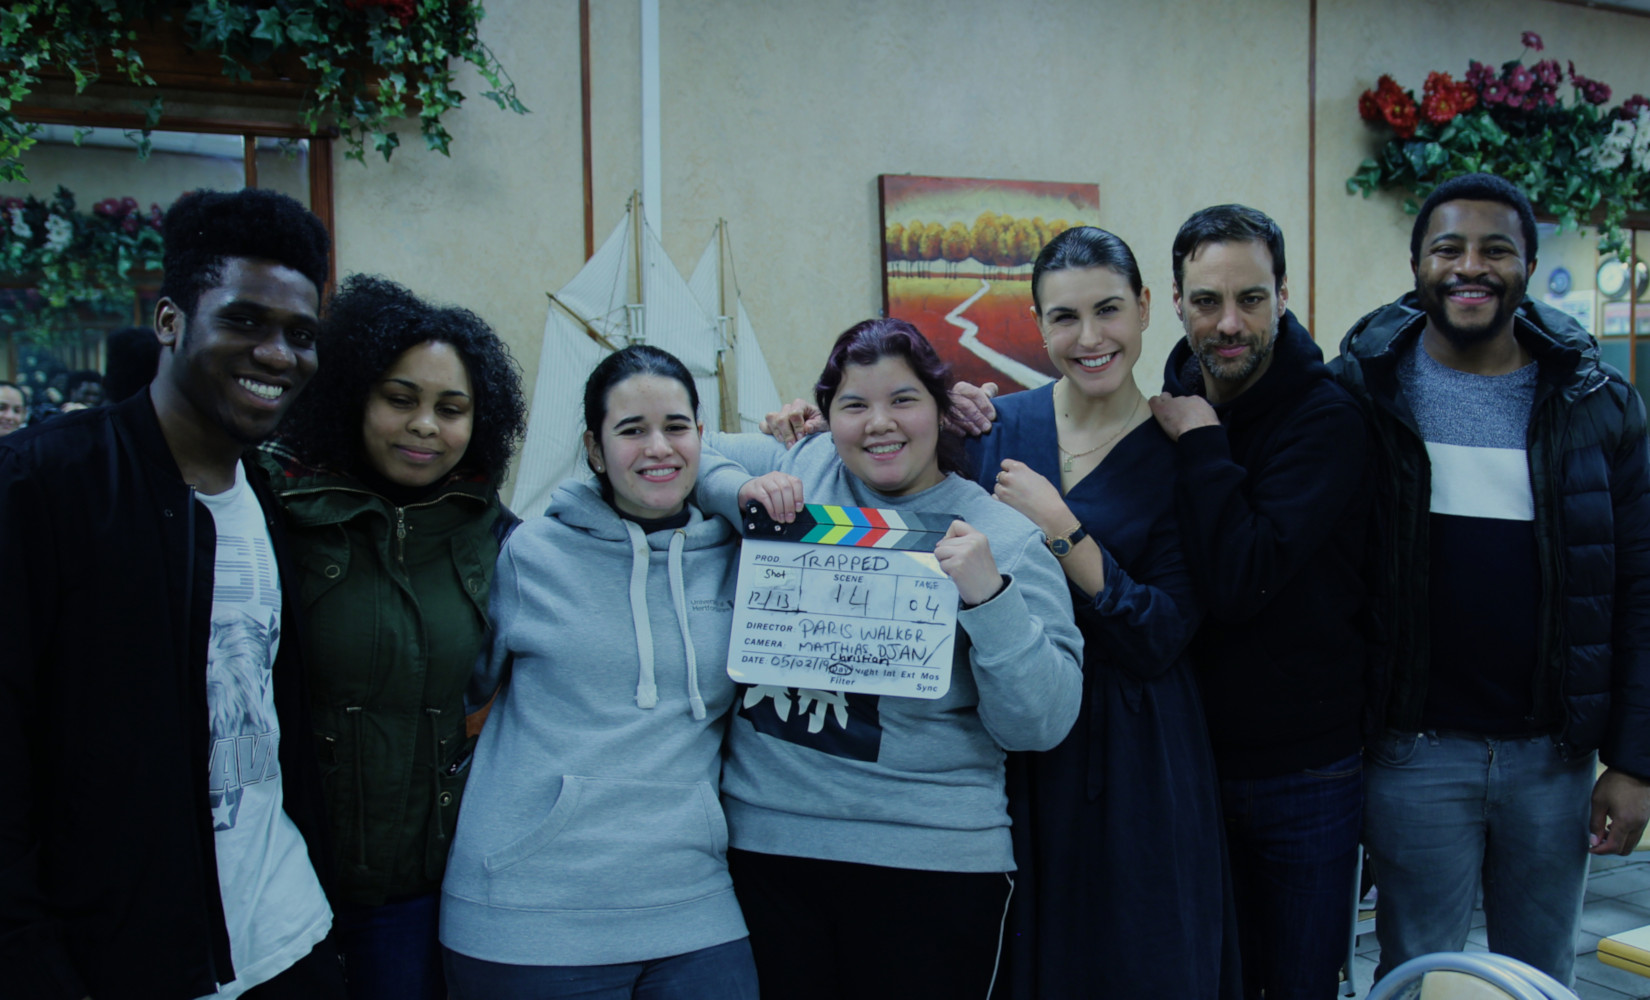 Behind the scenes cast and crew photo from Fresh Media Productions short film Trapped